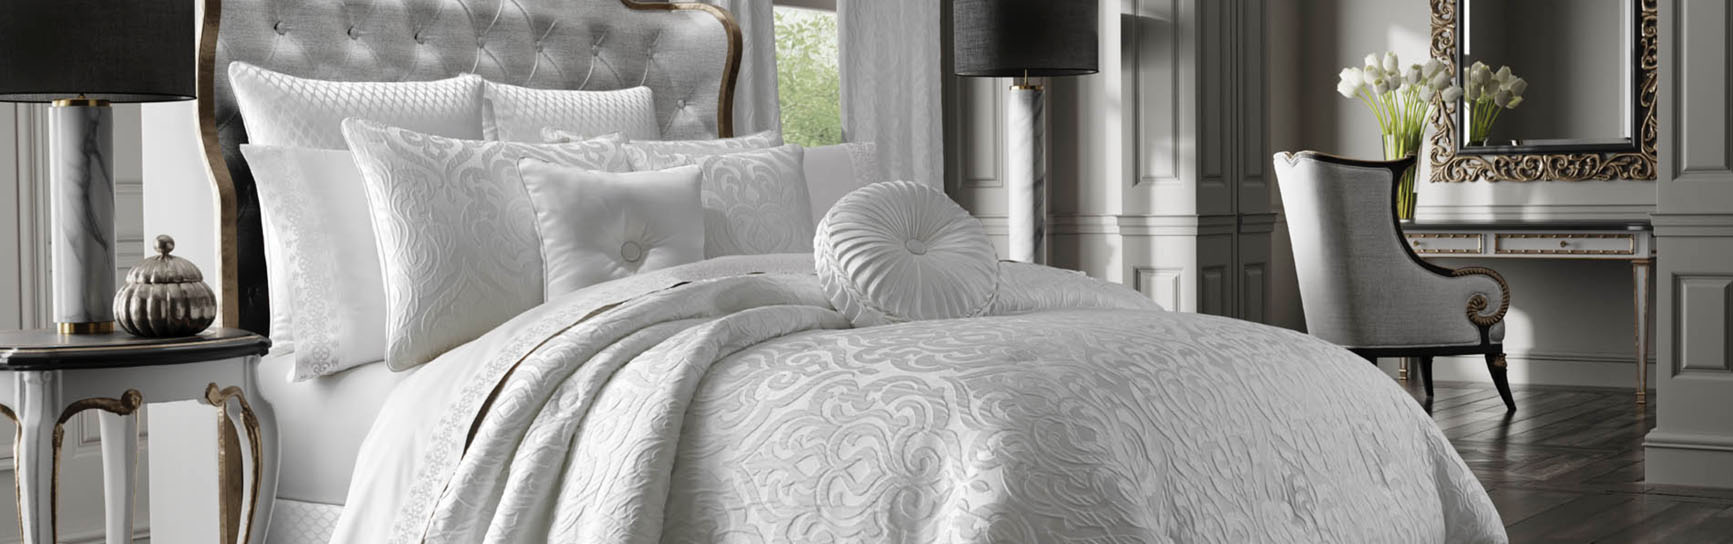 JQueen Bedding Collection